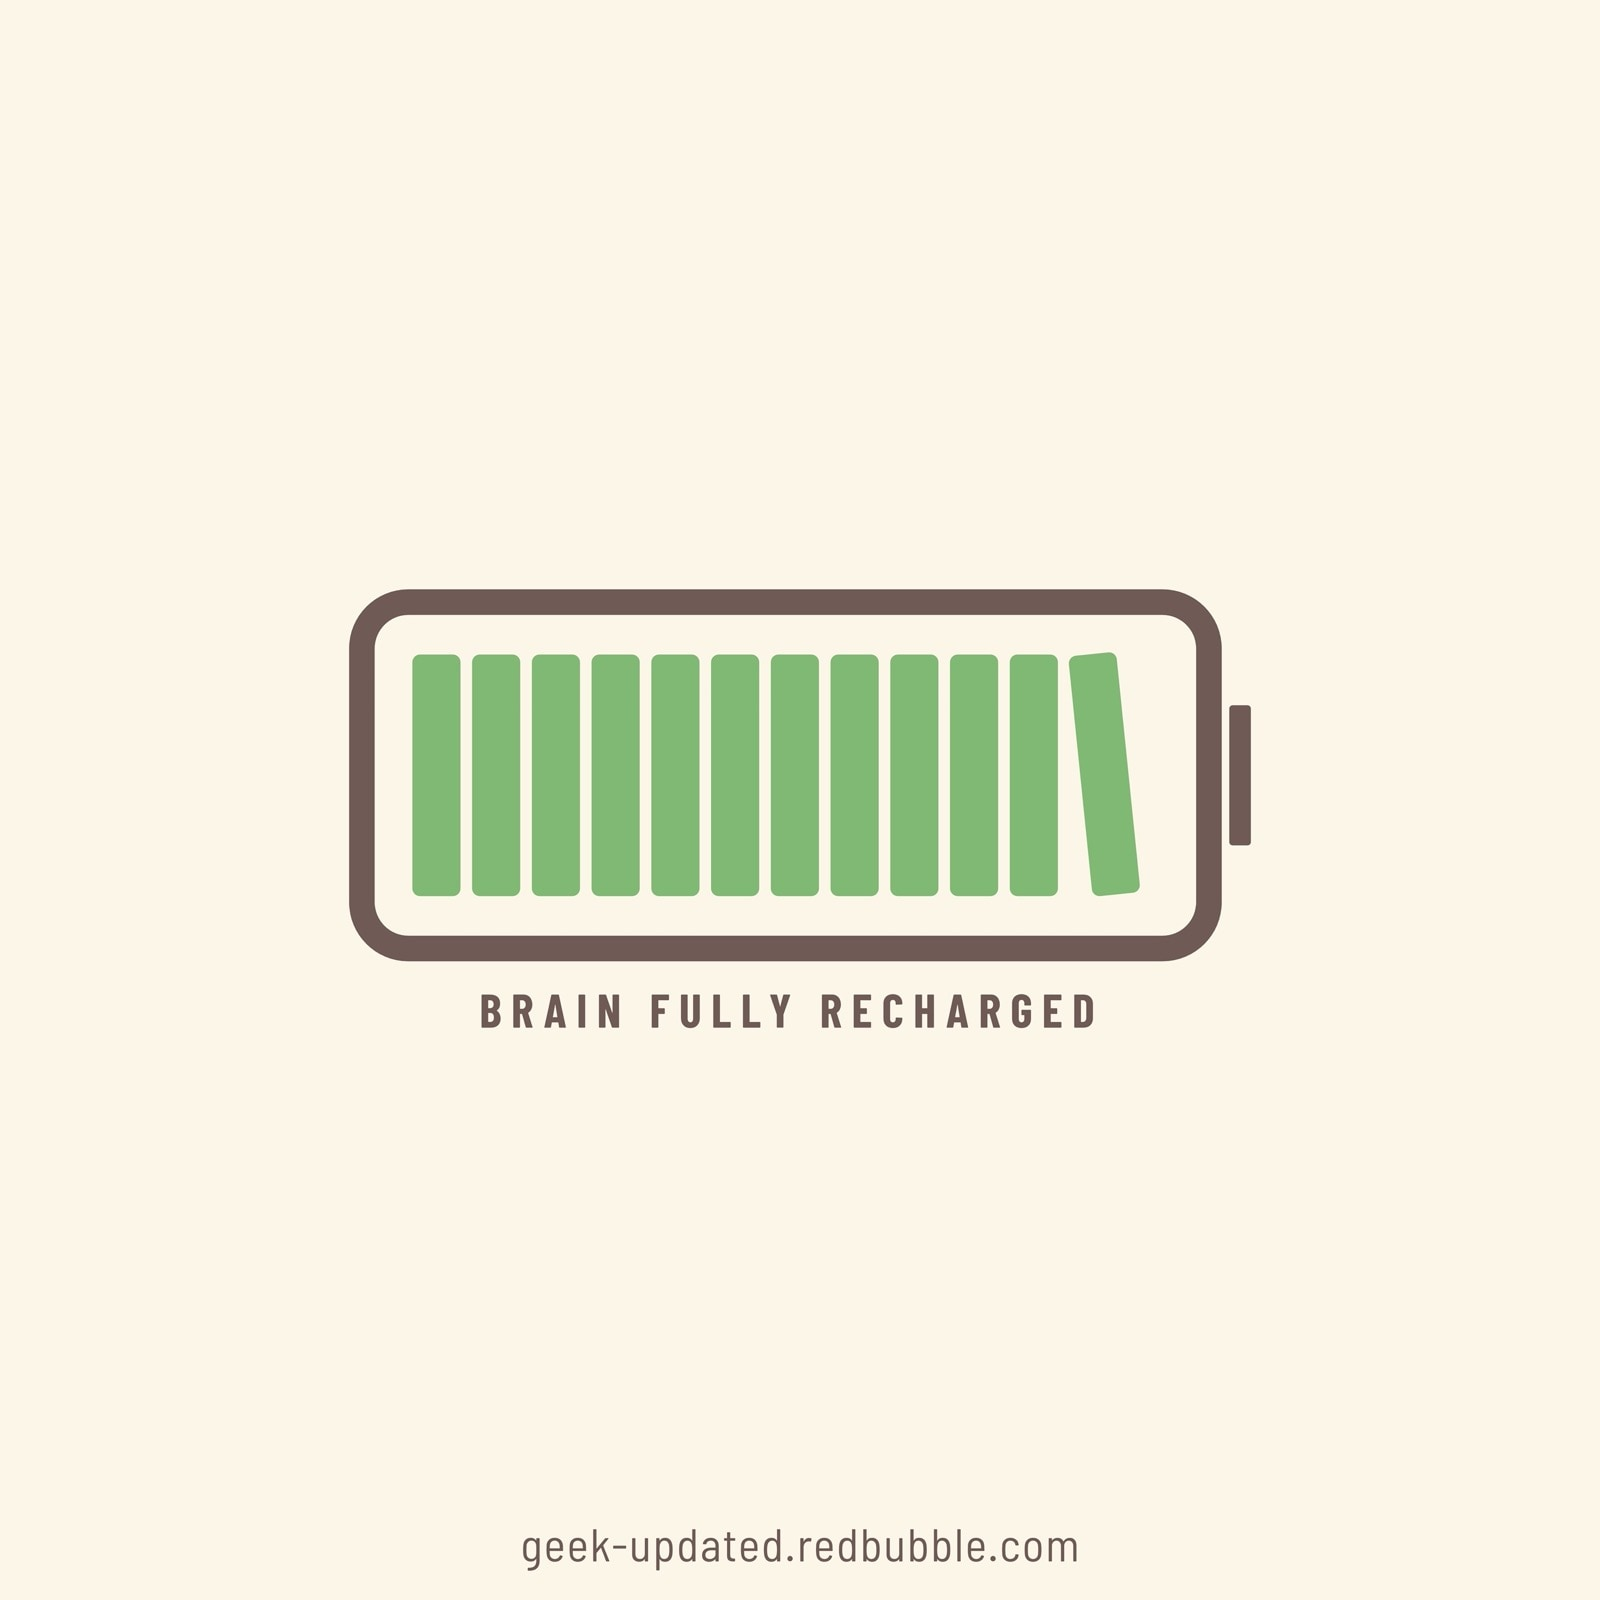 Brain fully recharged with books - design by Piotr Kowalczyk